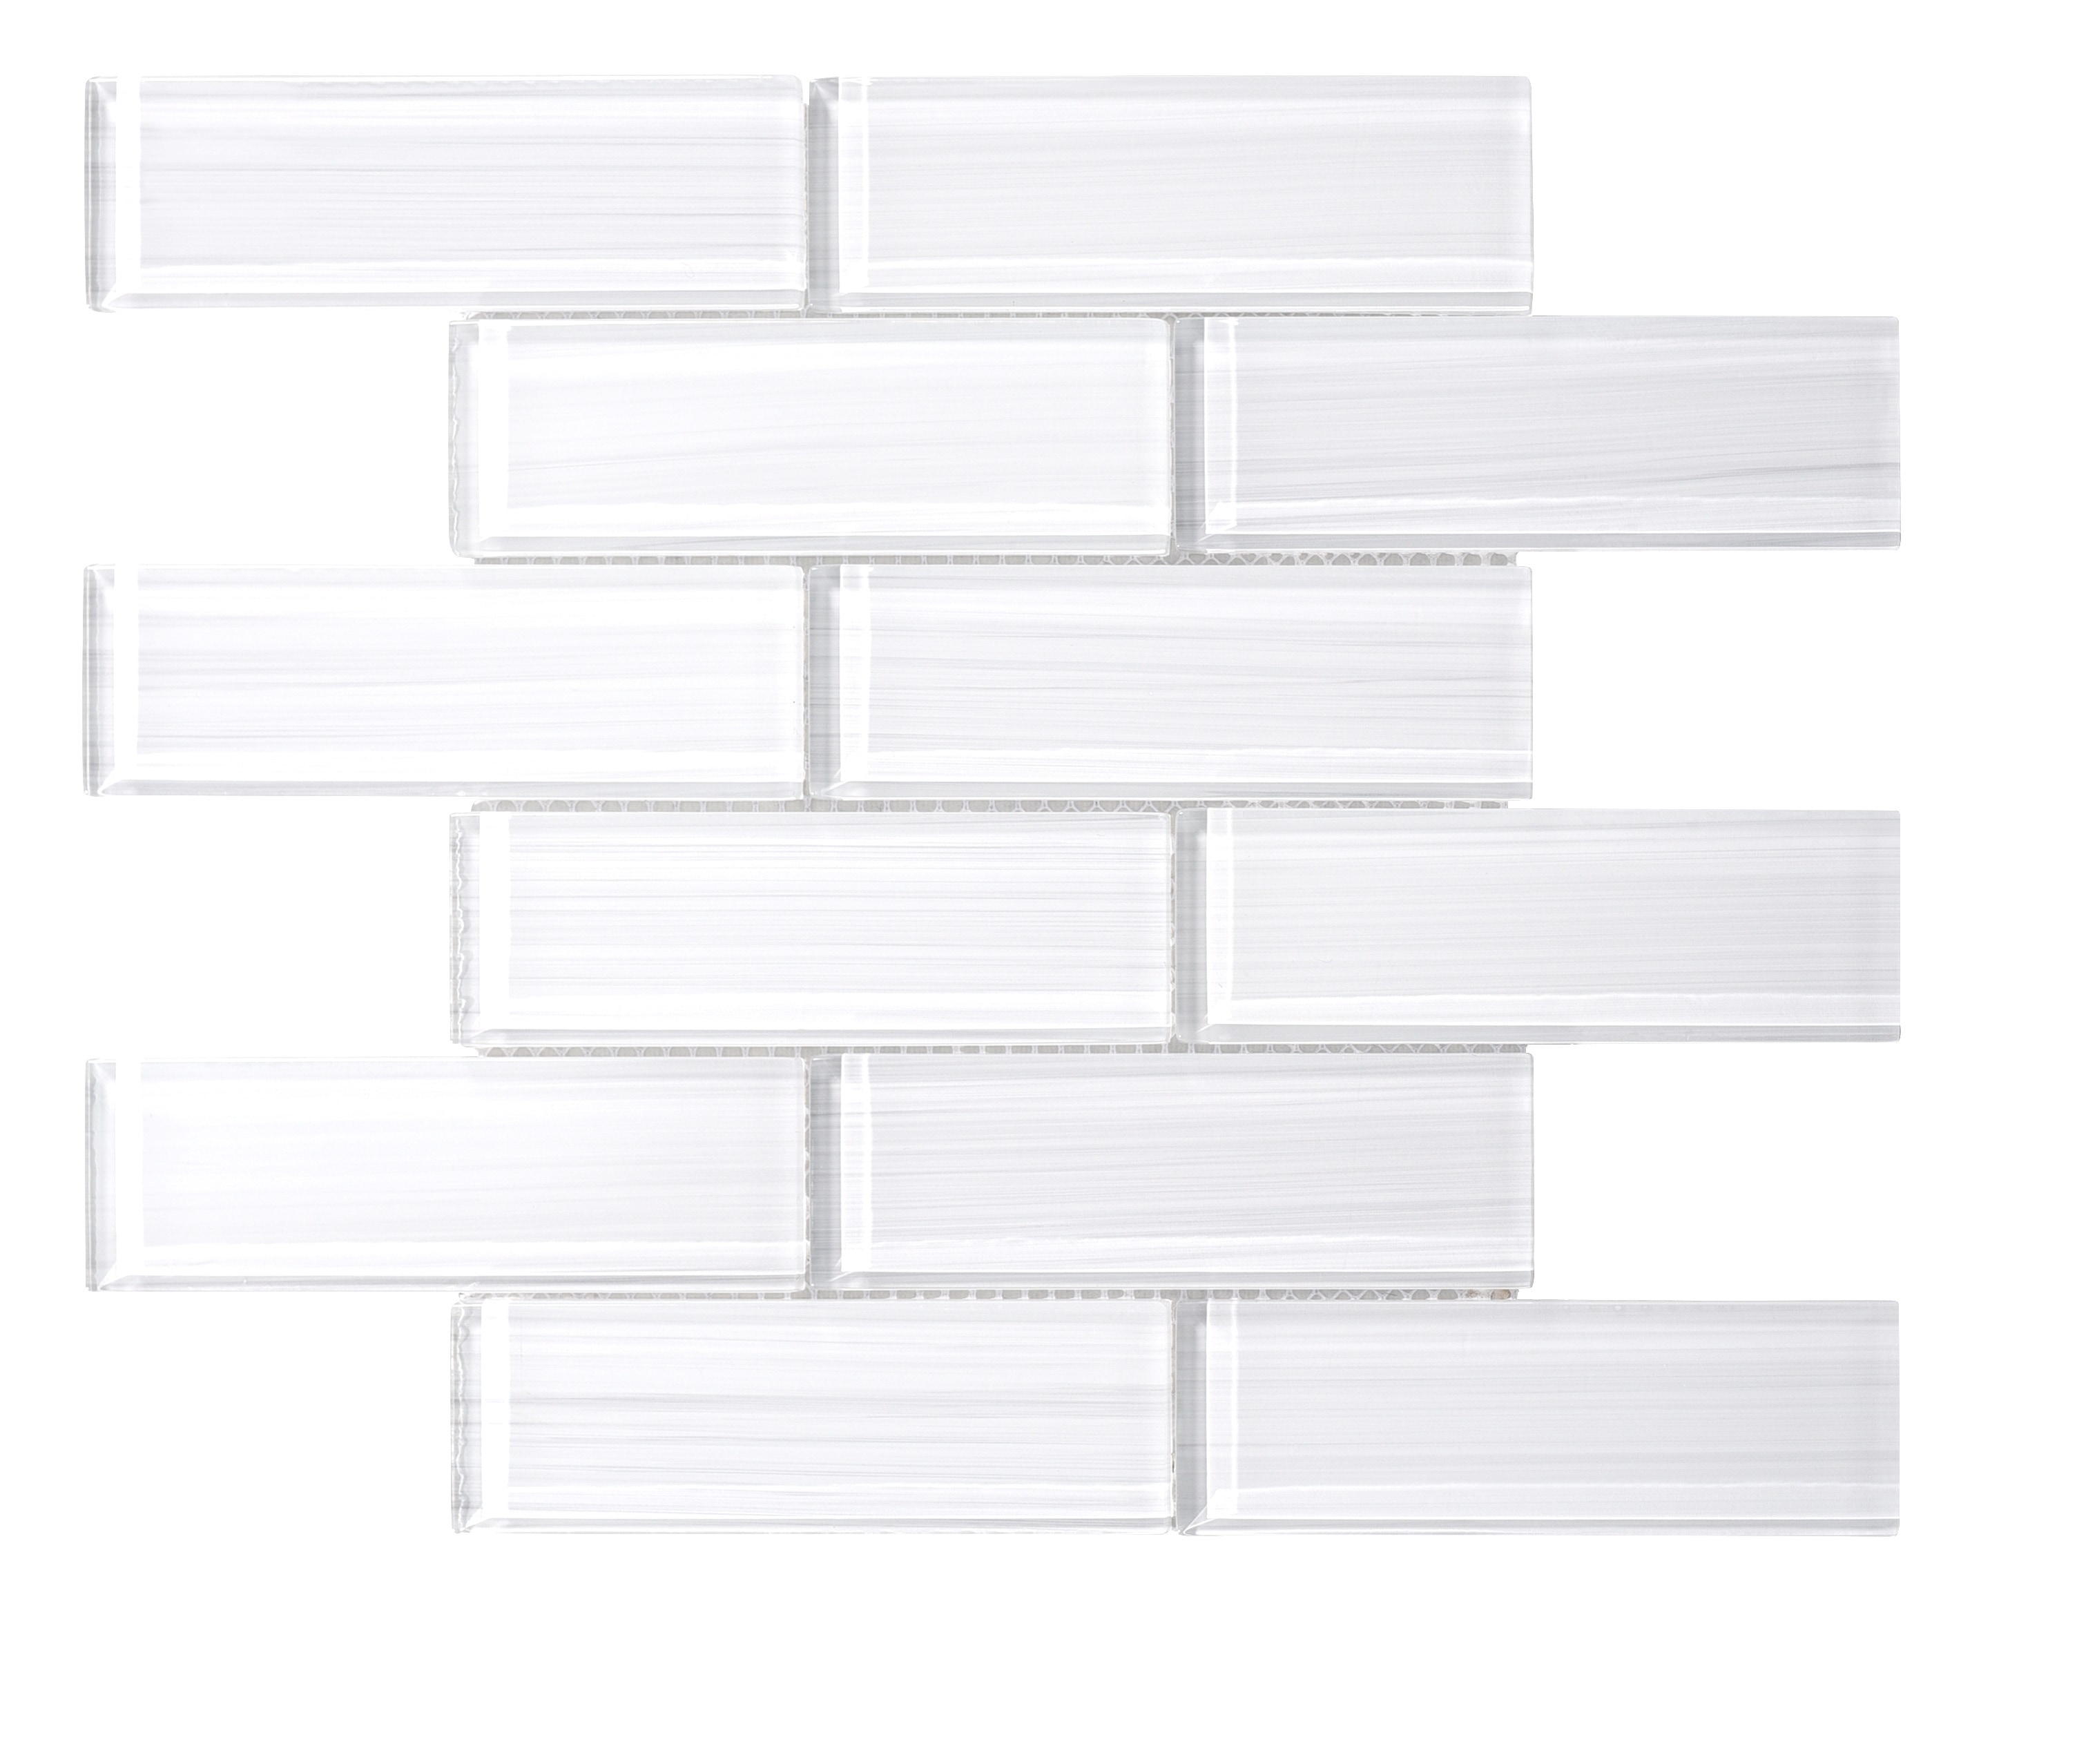 Glass Mosaic / 16 x 12 x 0.31 inches / Glossy Hand Painted Small Glass Subway Tile In White 0